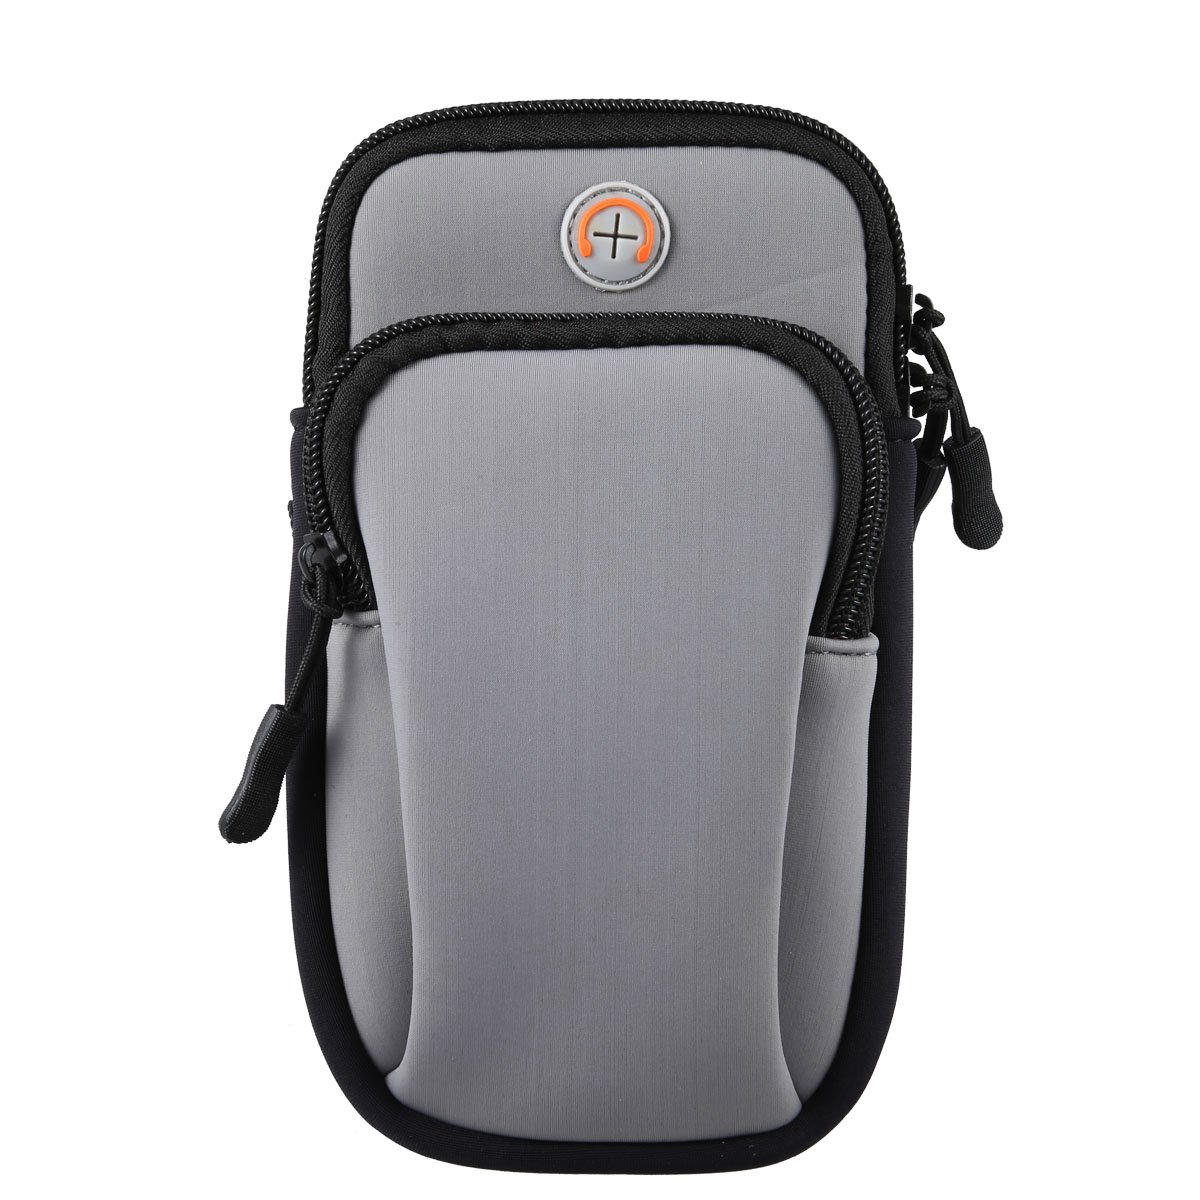 New Cell Phone Armband Running Case Sports Arm Bag Holder Fitness Strap Exercise Band Jogging Case Arm Band